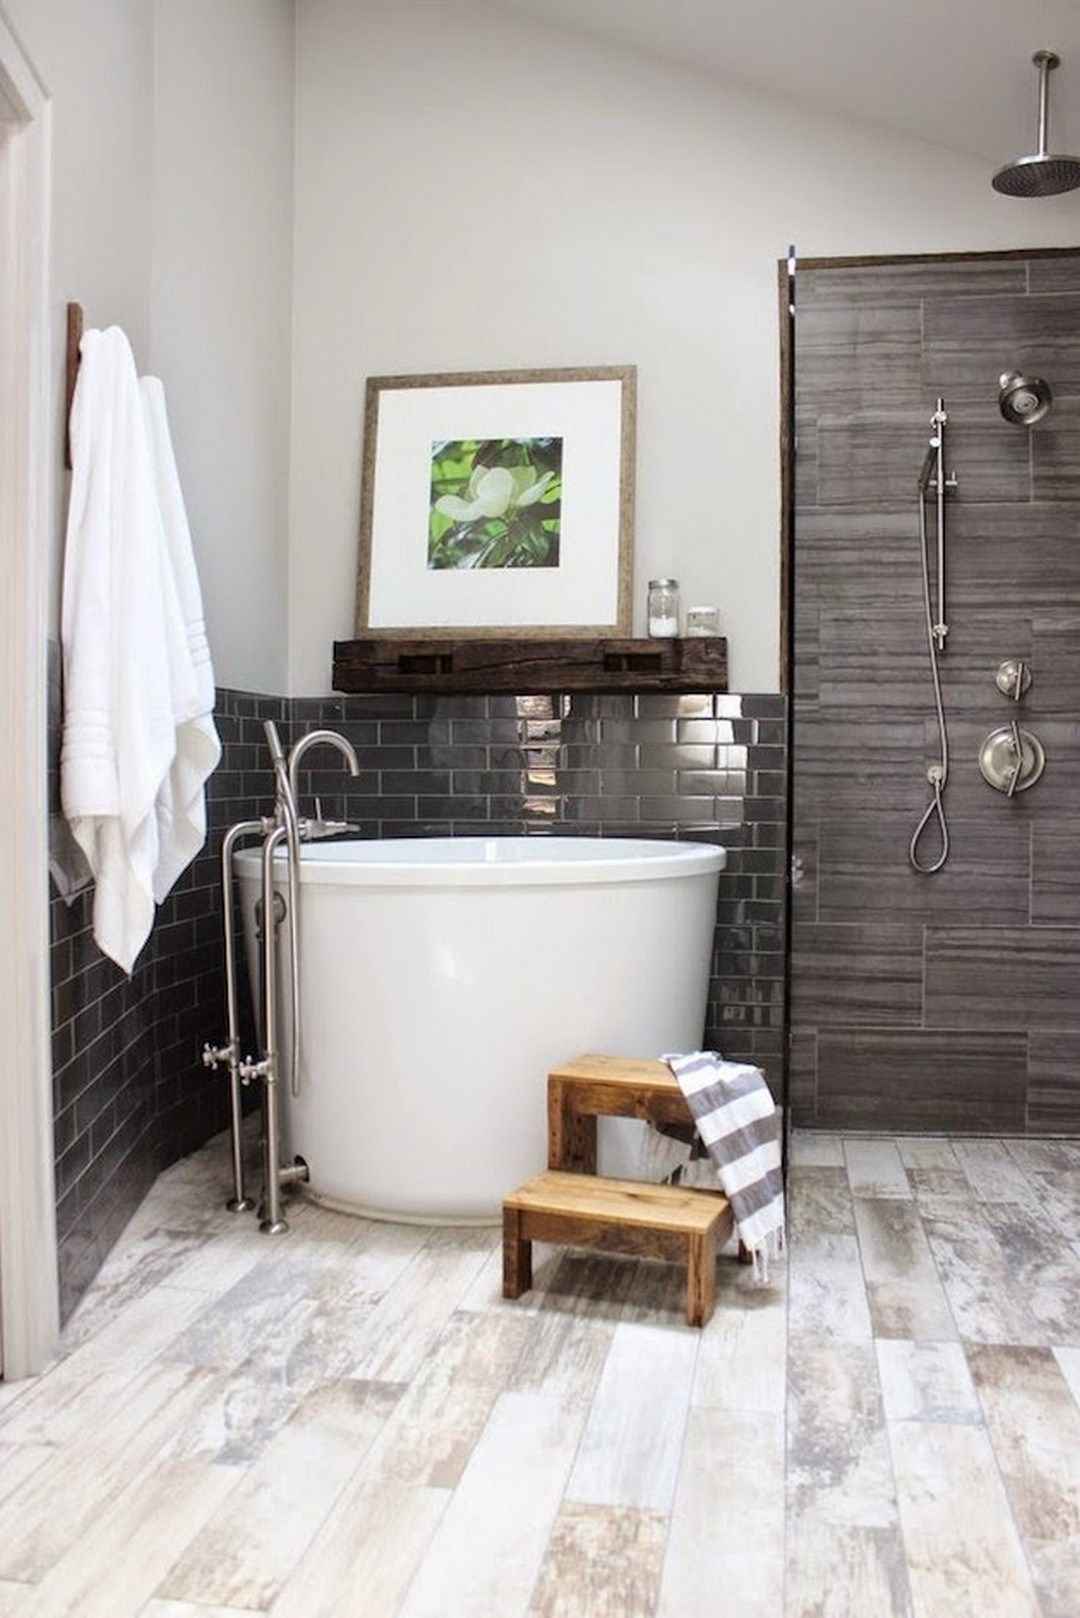 99 Small Bathroom Tub Shower Combo Remodeling Ideas (77 ...